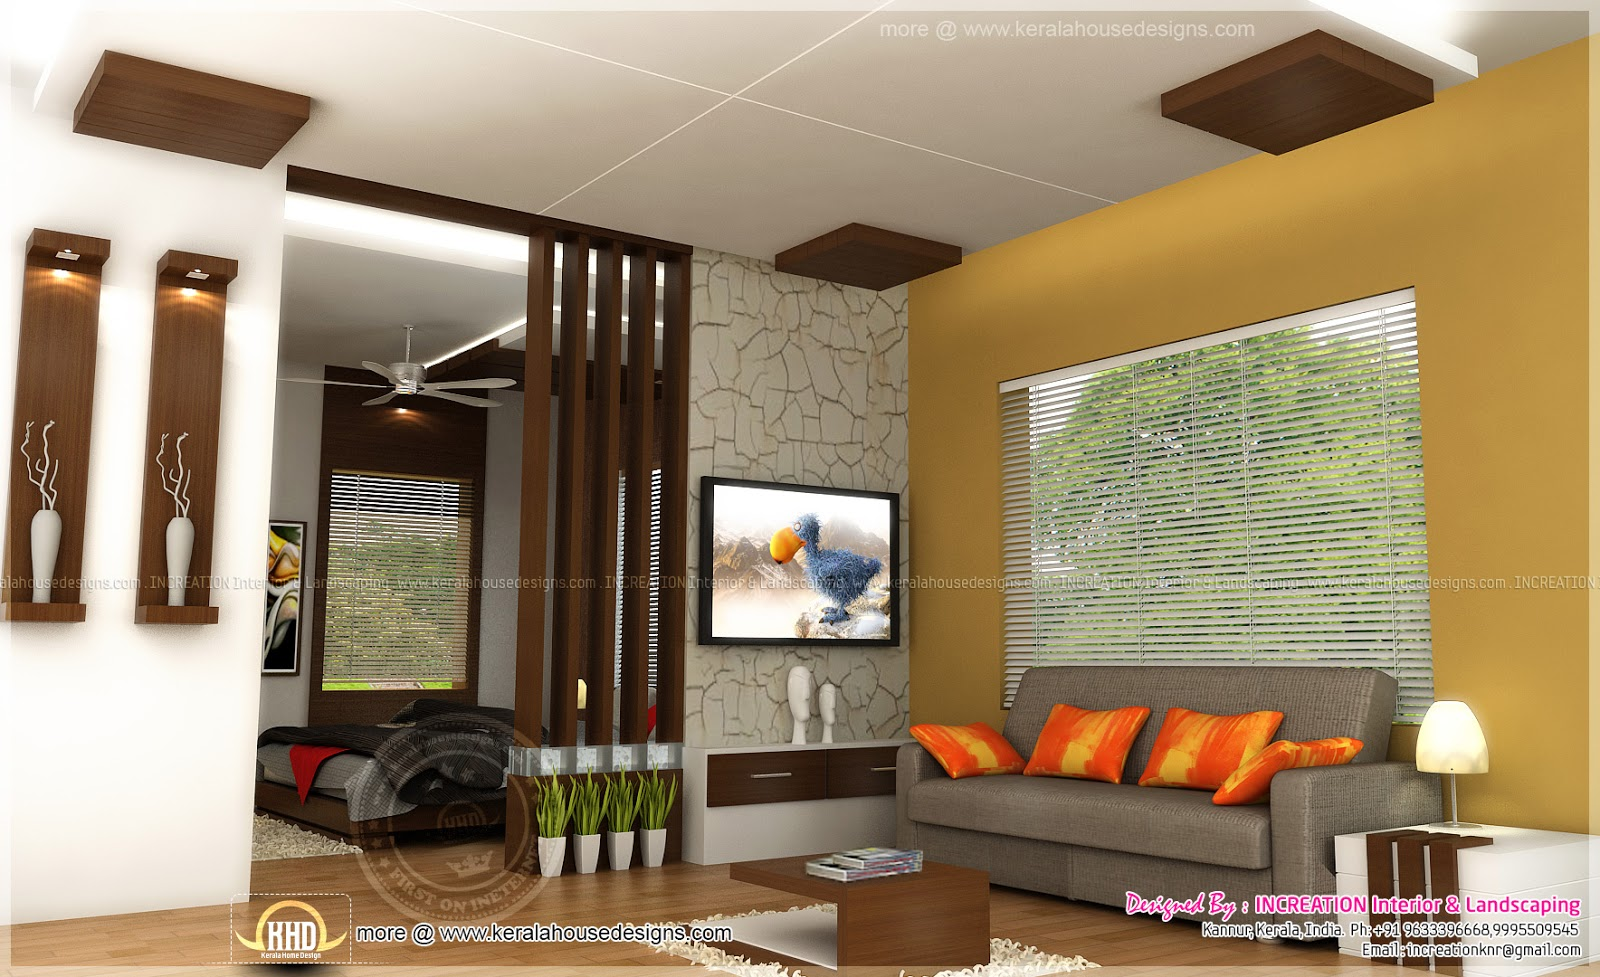 Interior designs from kannur kerala kerala home design for Interior site